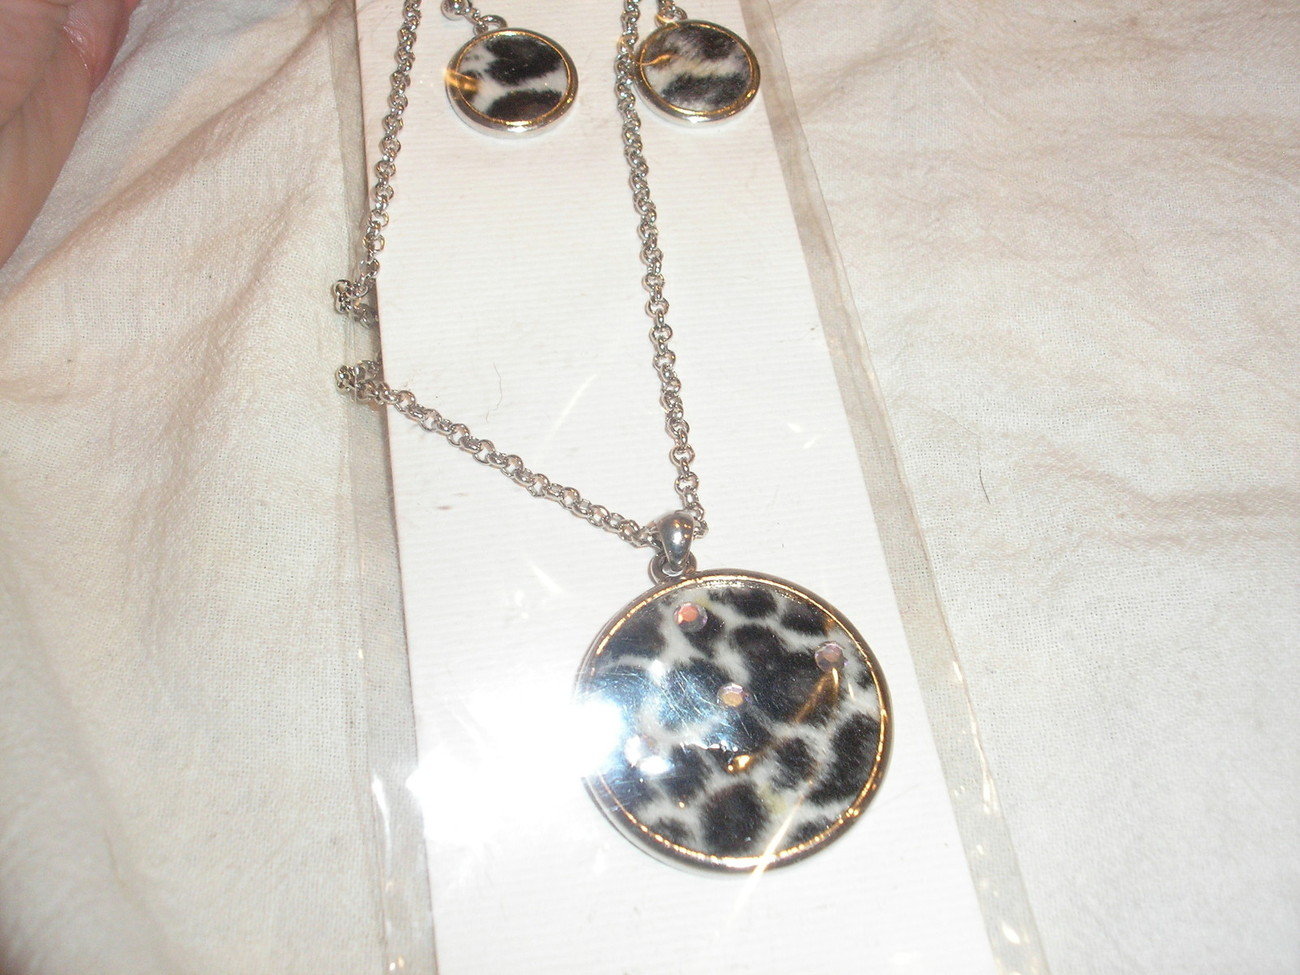 1 Wholesale African style Leopard adjustable Necklace & Earrings by Lovely NEW